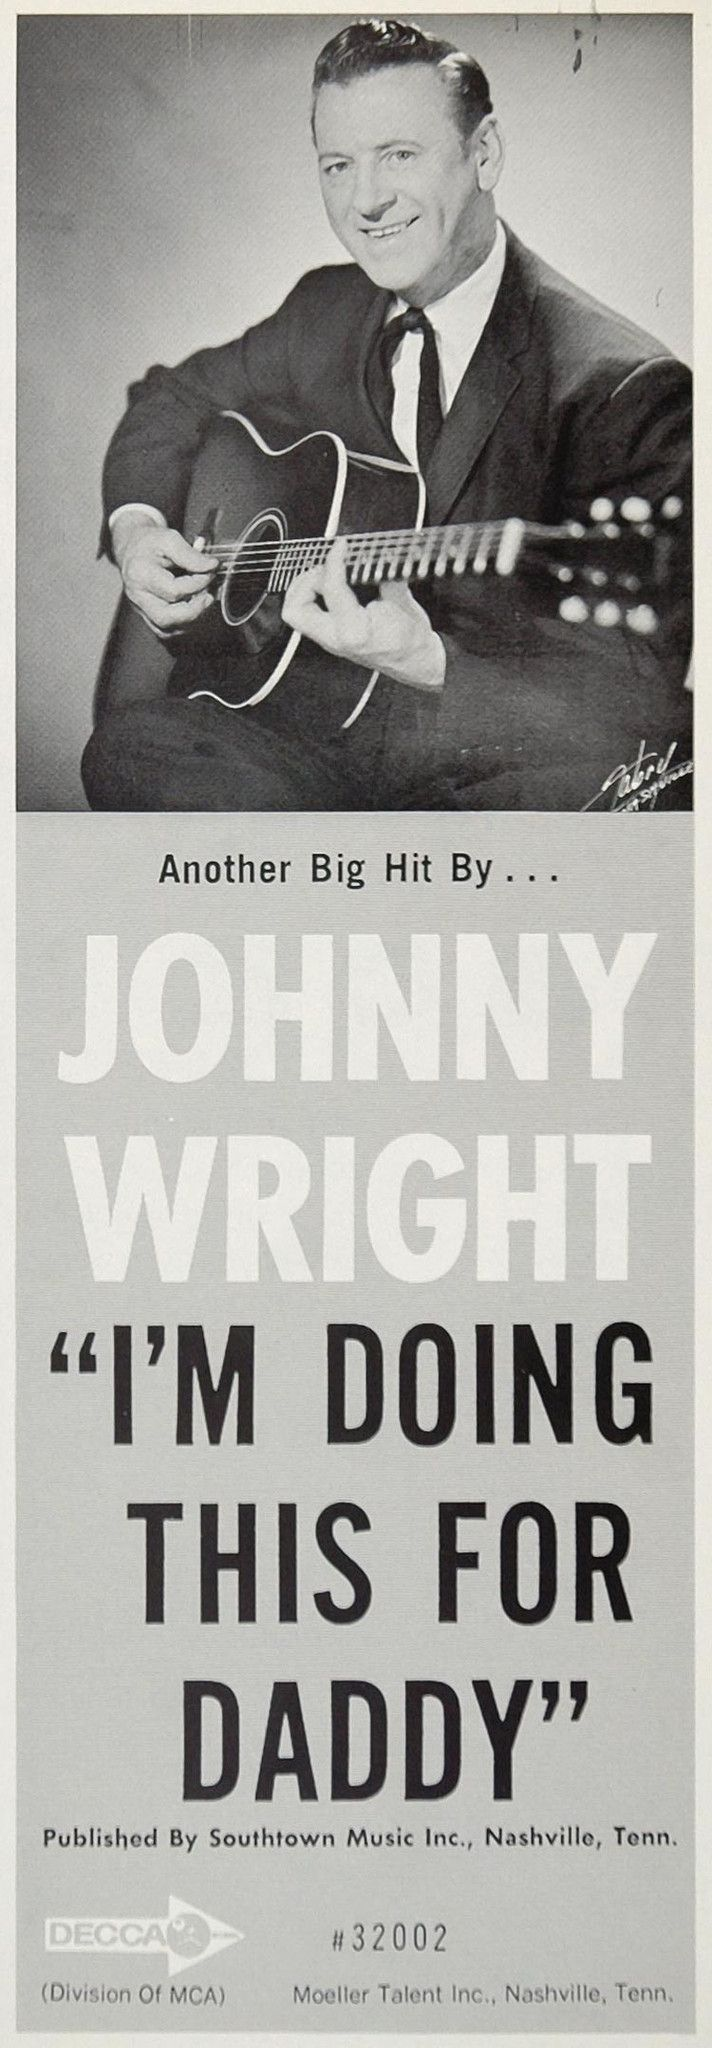 """This is an original 1966 black and white ad for country music artist Johnny Wright's hit song """"I'm Doing This For Daddy,"""" published by Southtown Music Inc. (Decca Records #32002.) Period Paper is prou"""